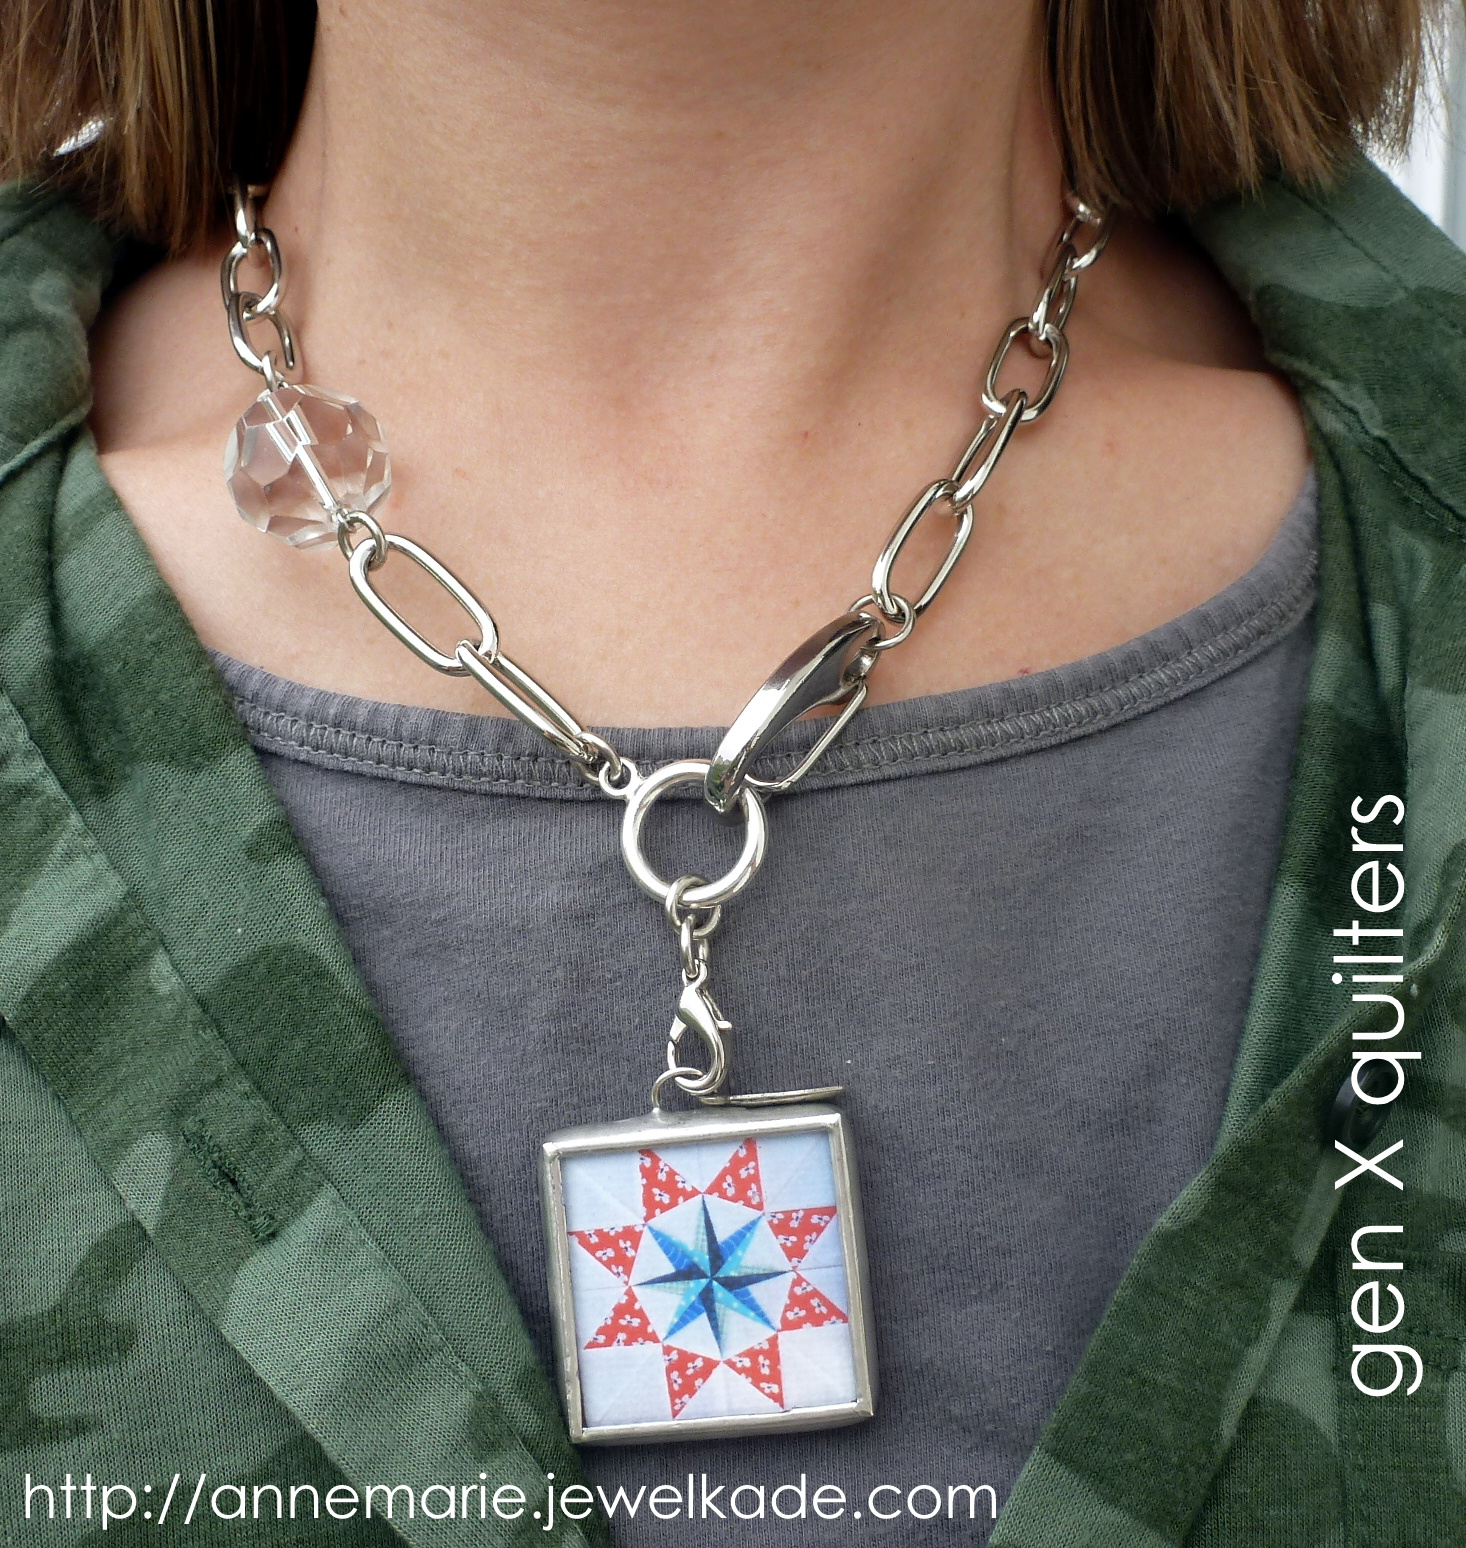 me wearing quilt block jewel kade photo charm